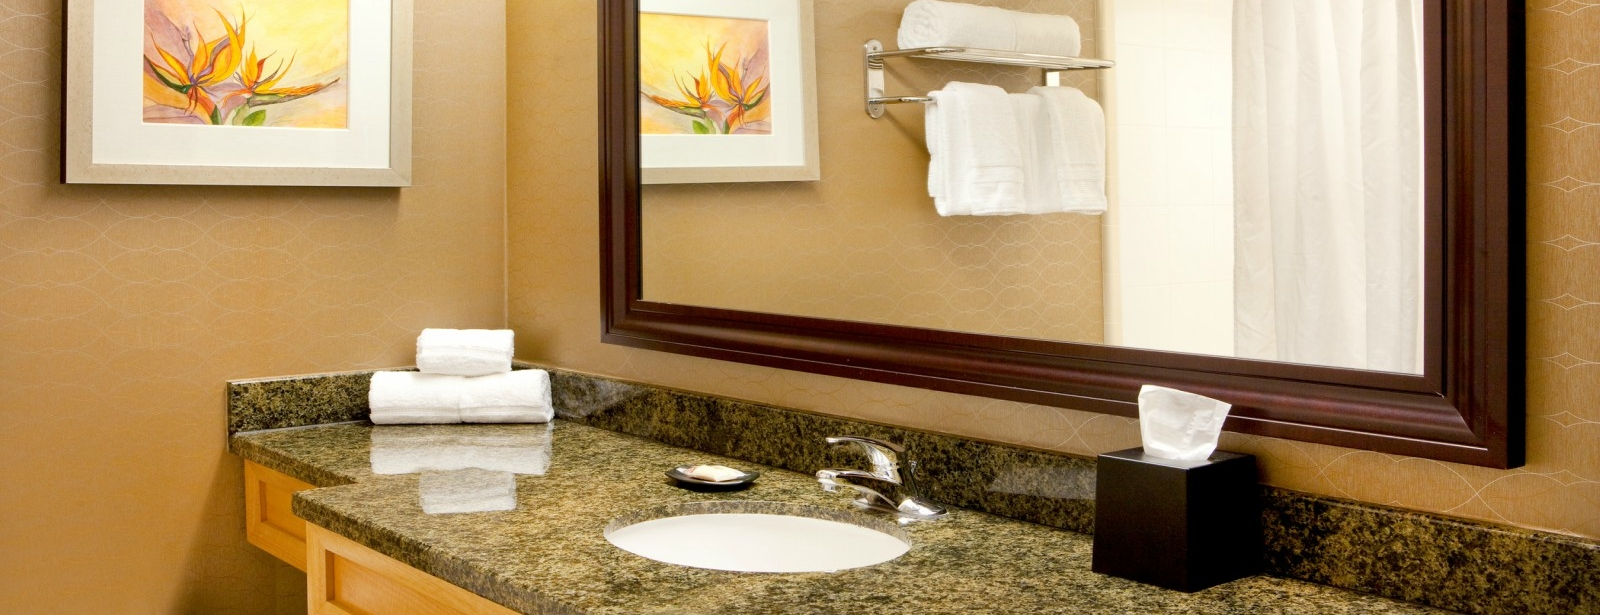 Guest Bathroom | Sheraton Myrtle Beach Convention Center Hotel